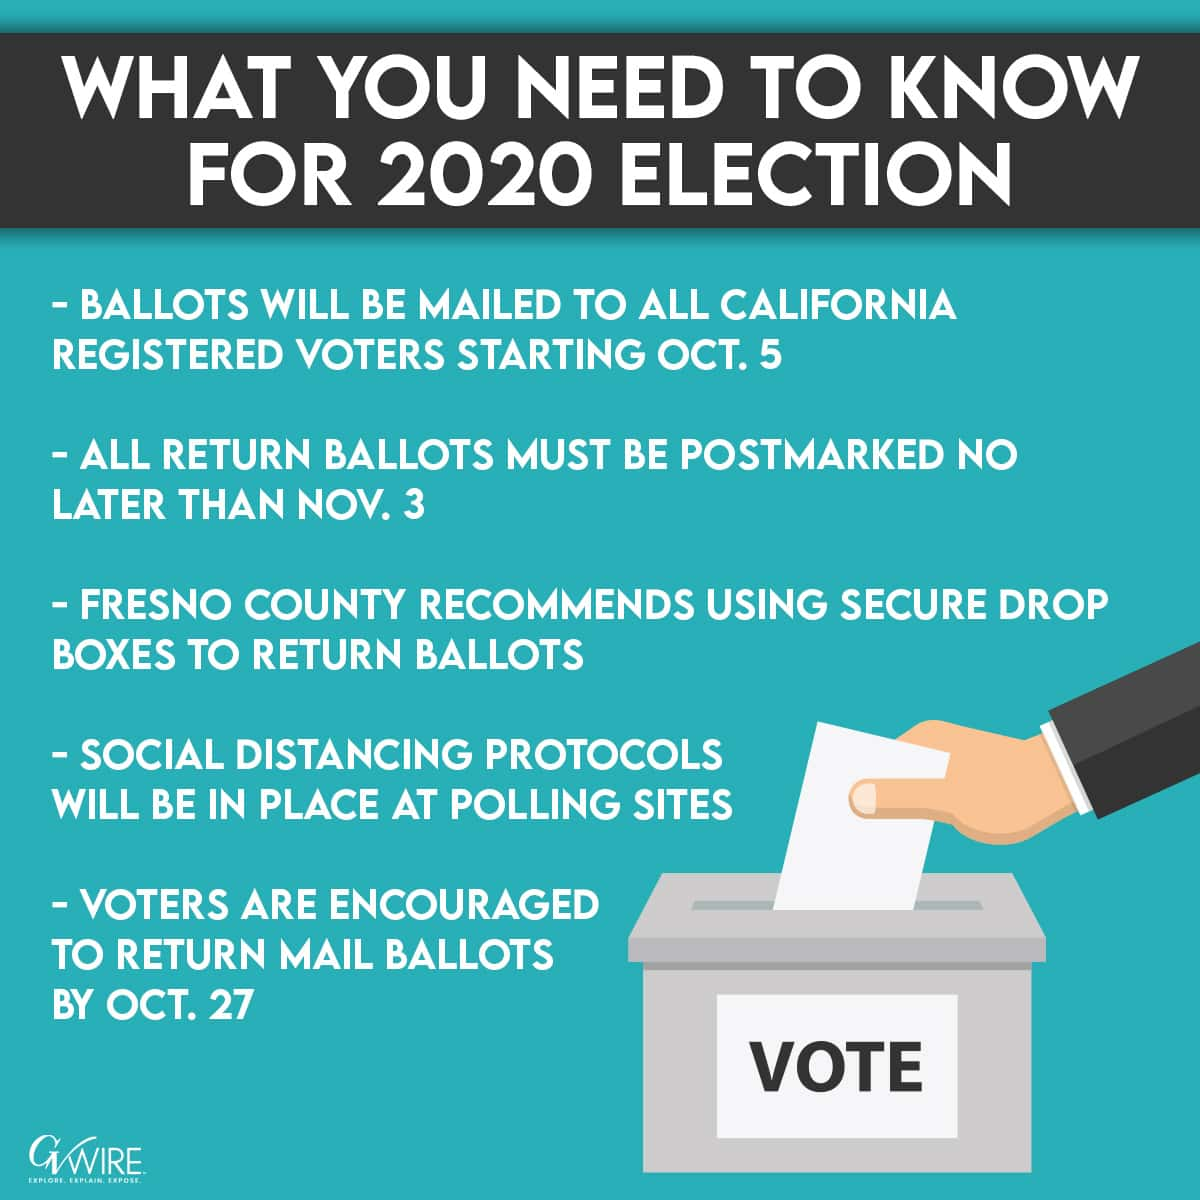 Graphic of key facts for November 2020 election